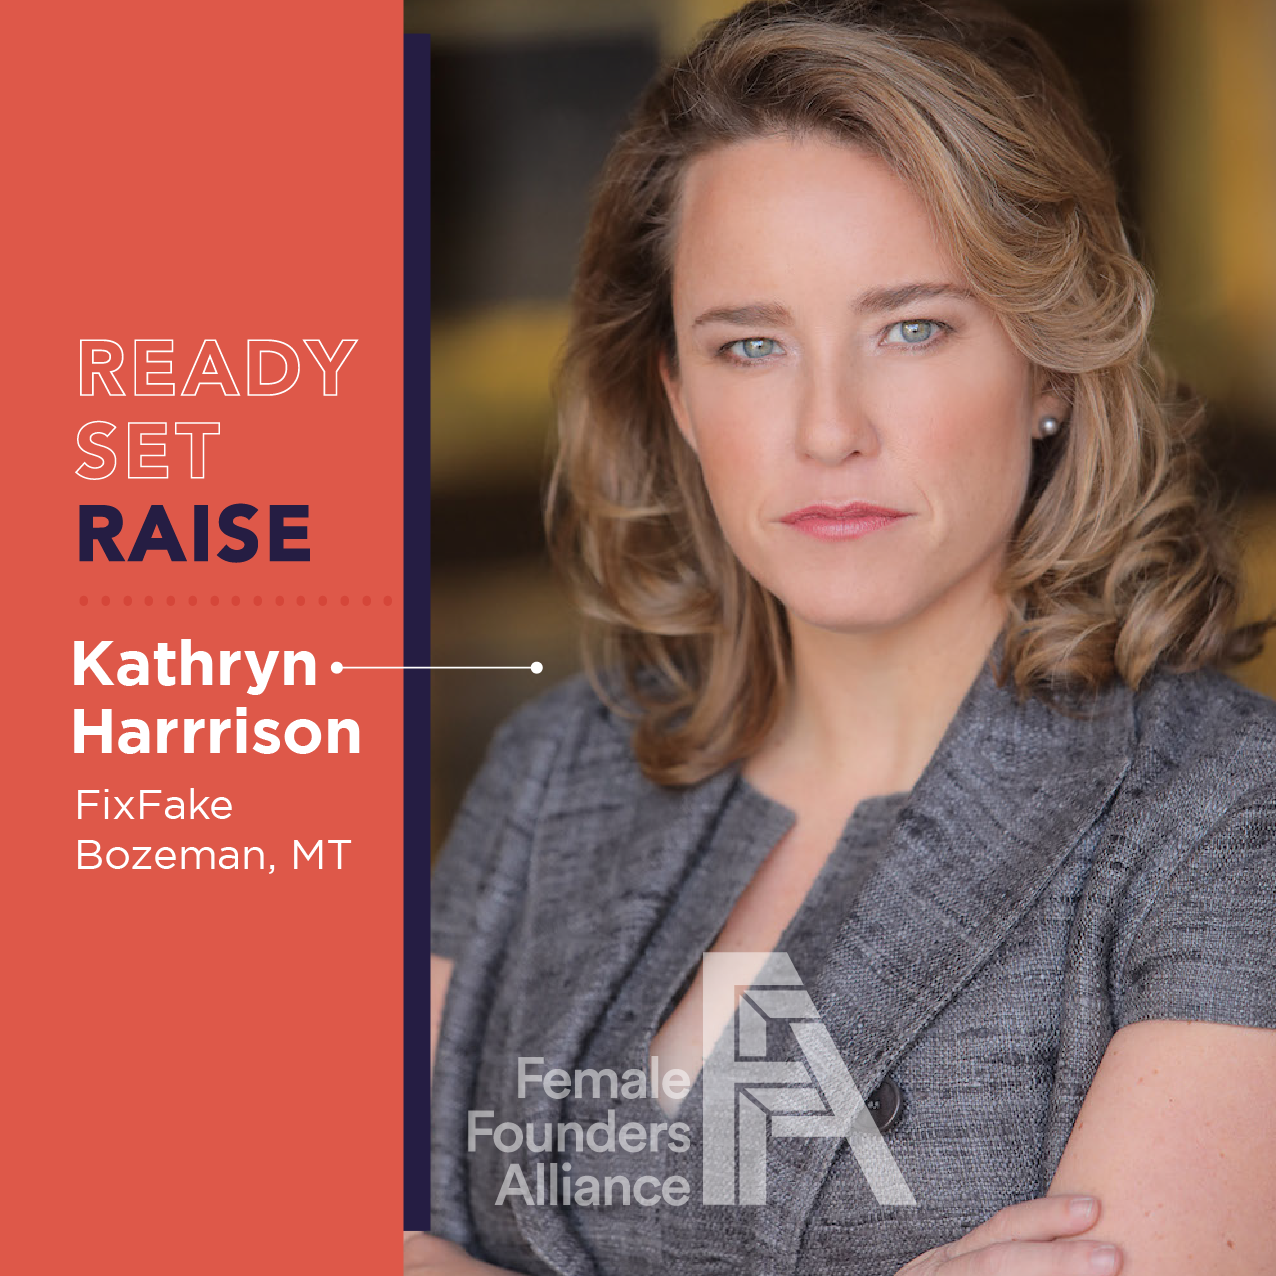 https://femalefounders.org/wp-content/uploads/2020/10/Social-Card-Kathryn-Harrison.png